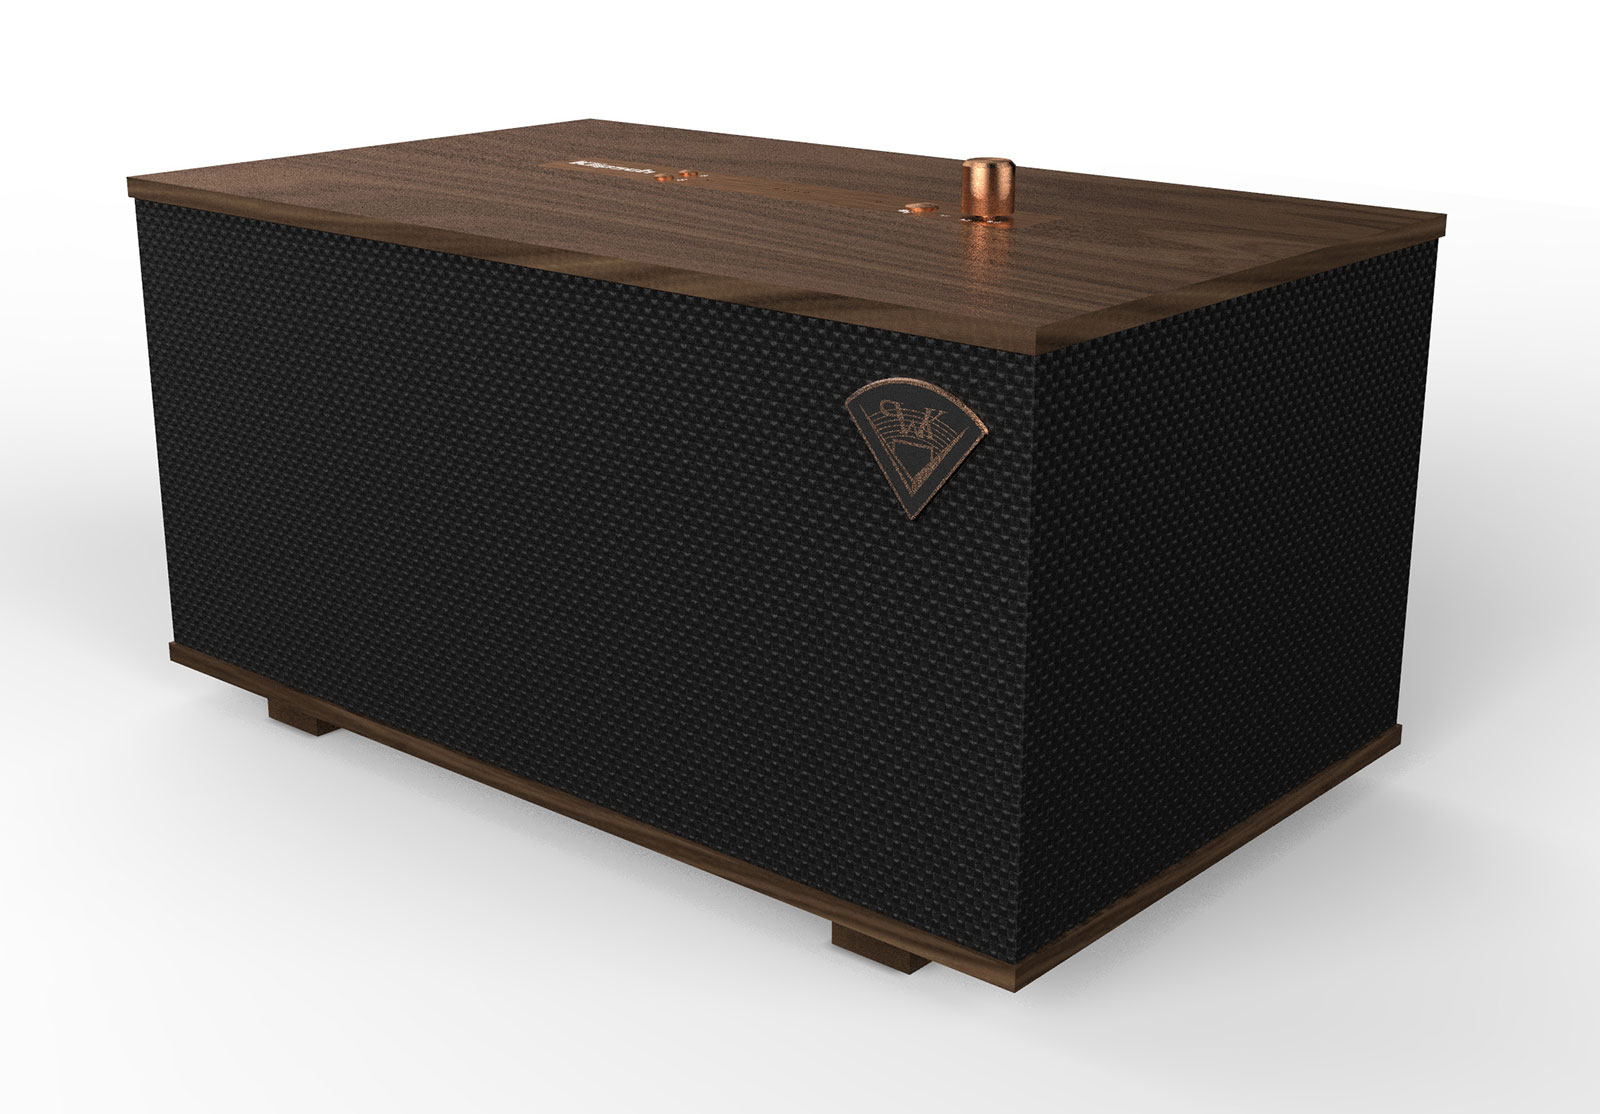 Klipsch speakers are getting Alexa and Google Assistant